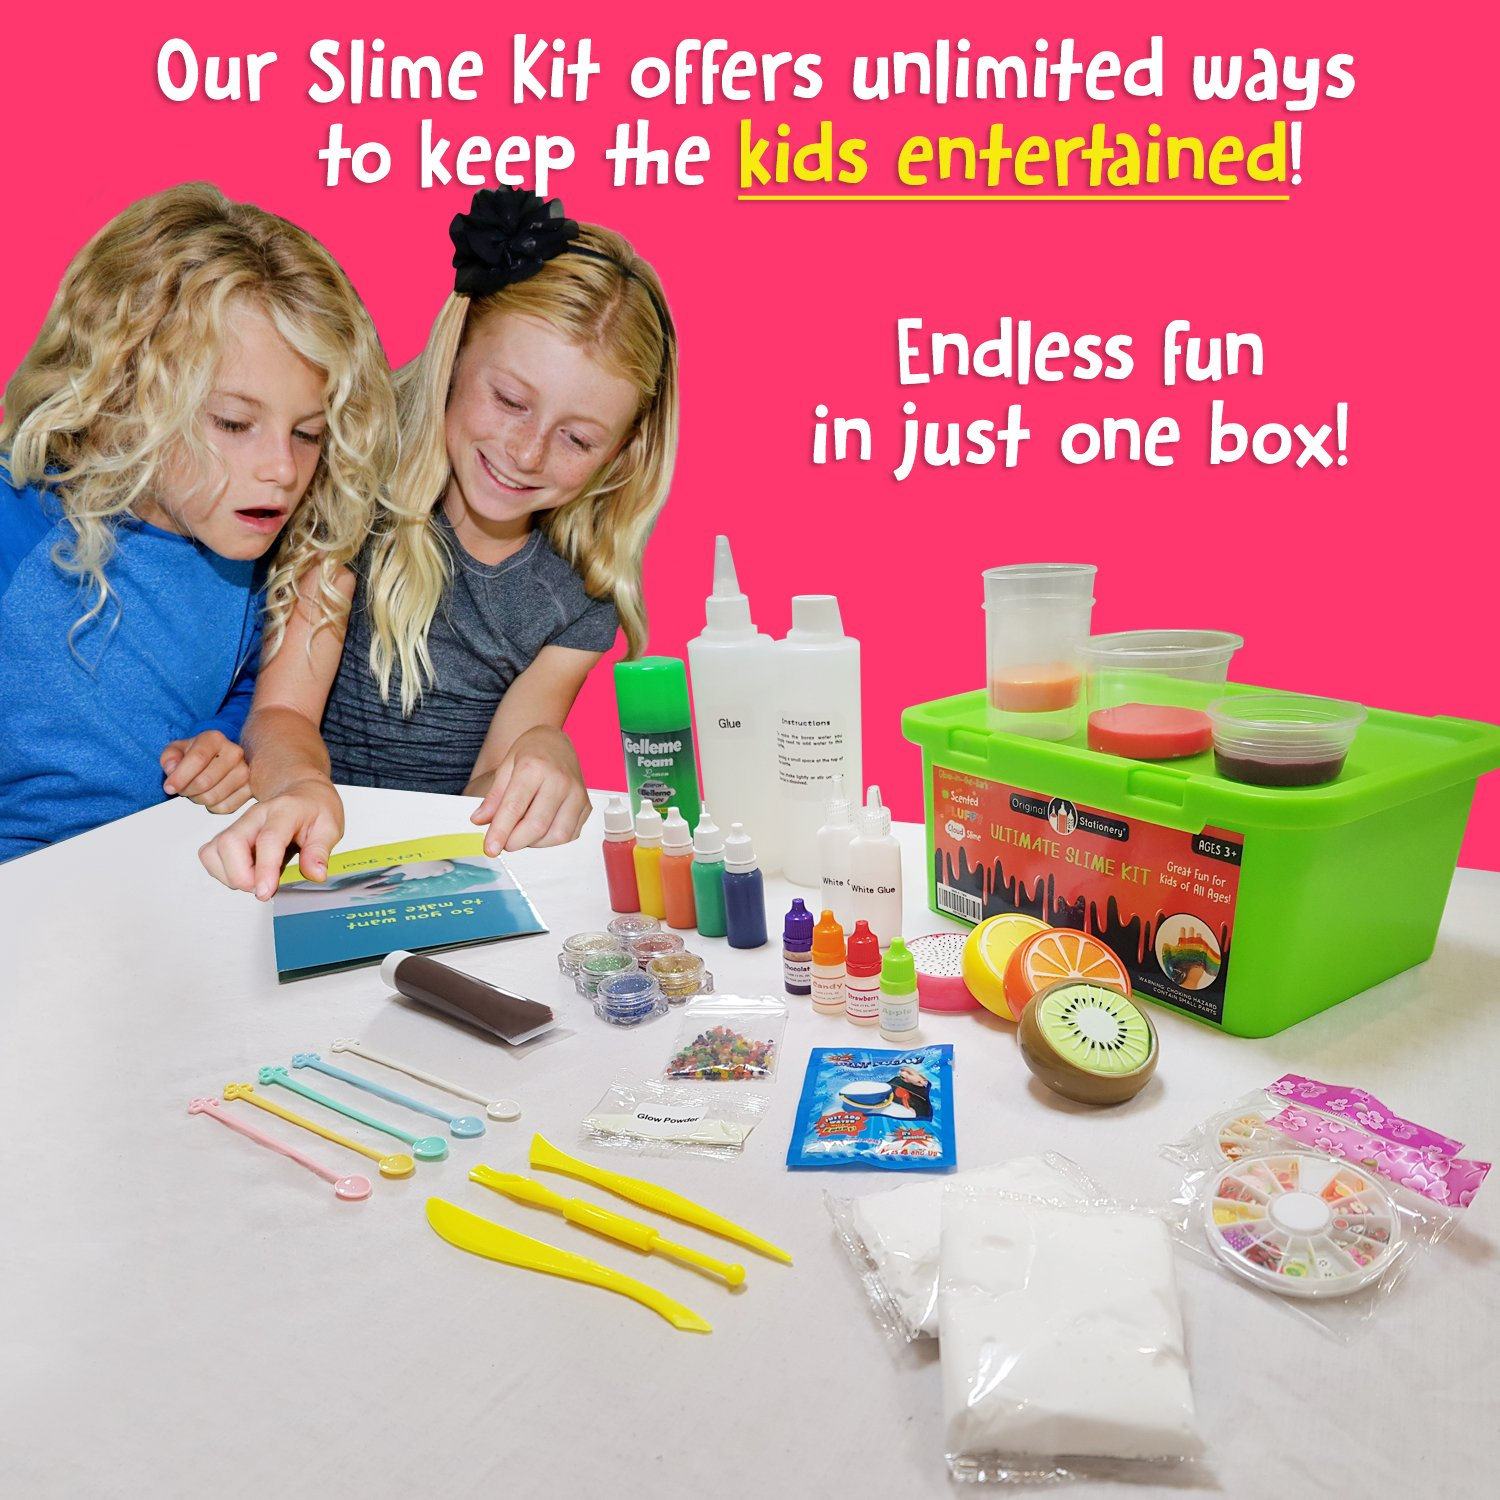 Amazon ultimate slime kit supplies stuff for girls and boys amazon ultimate slime kit supplies stuff for girls and boys making slime everything in one box kids can make unicorn glitter cloud rainbow slimes ccuart Choice Image